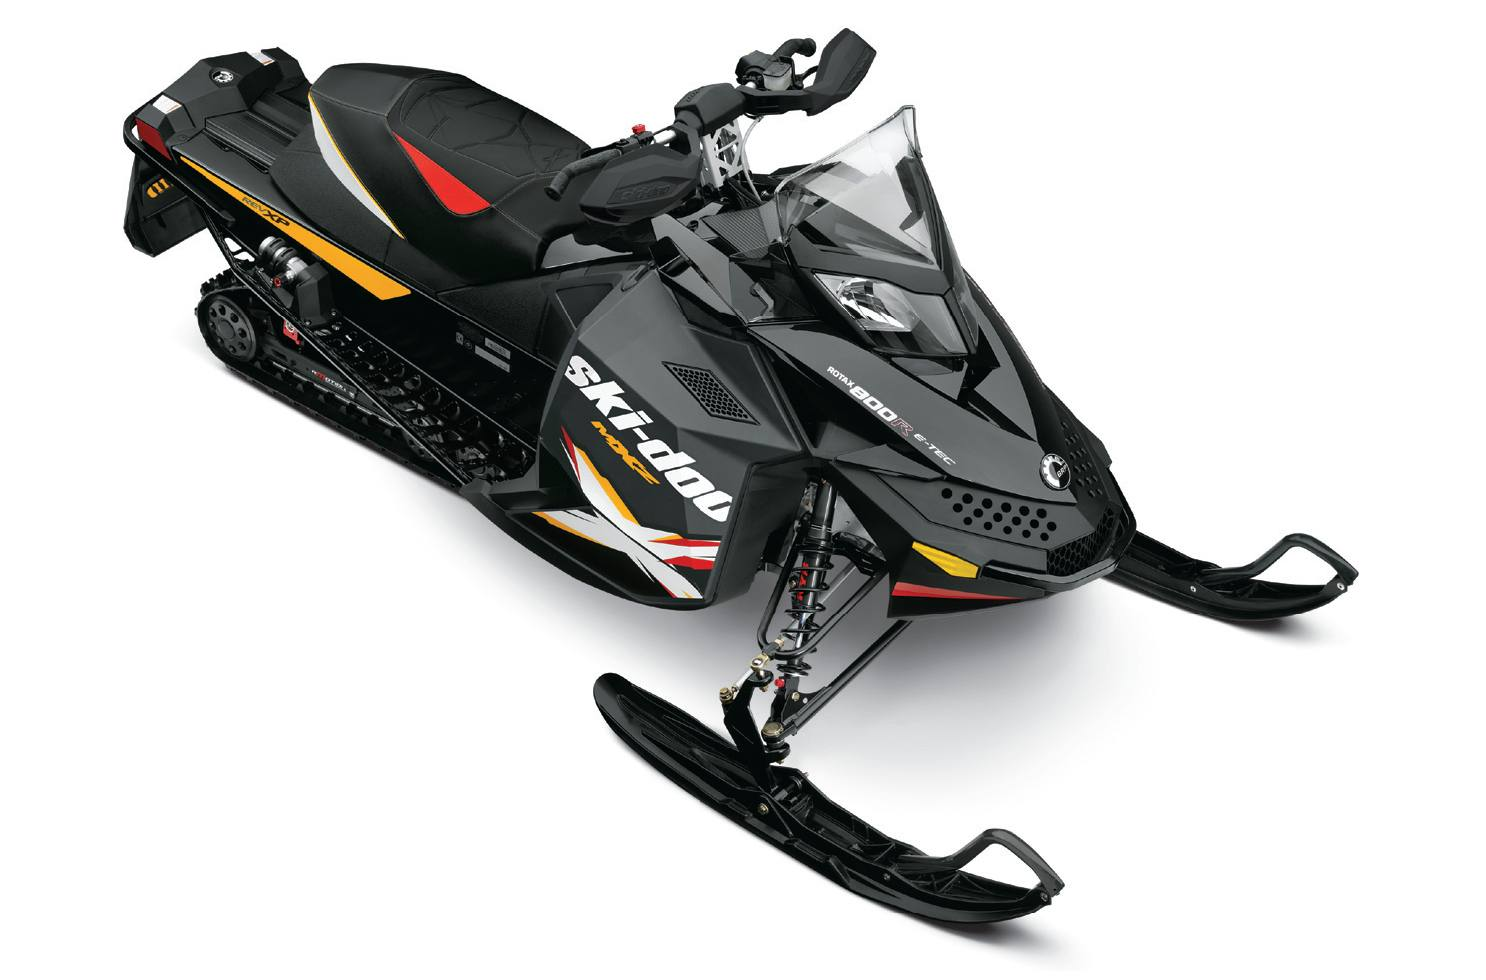 2014 Ski Doo Snowmobile Headlight Wiring Diagram List Of Schematic 96 Sea Gtx 2012 Mx Z X Rotax E Tec 800r For Sale In Wingham On Lynn Rh